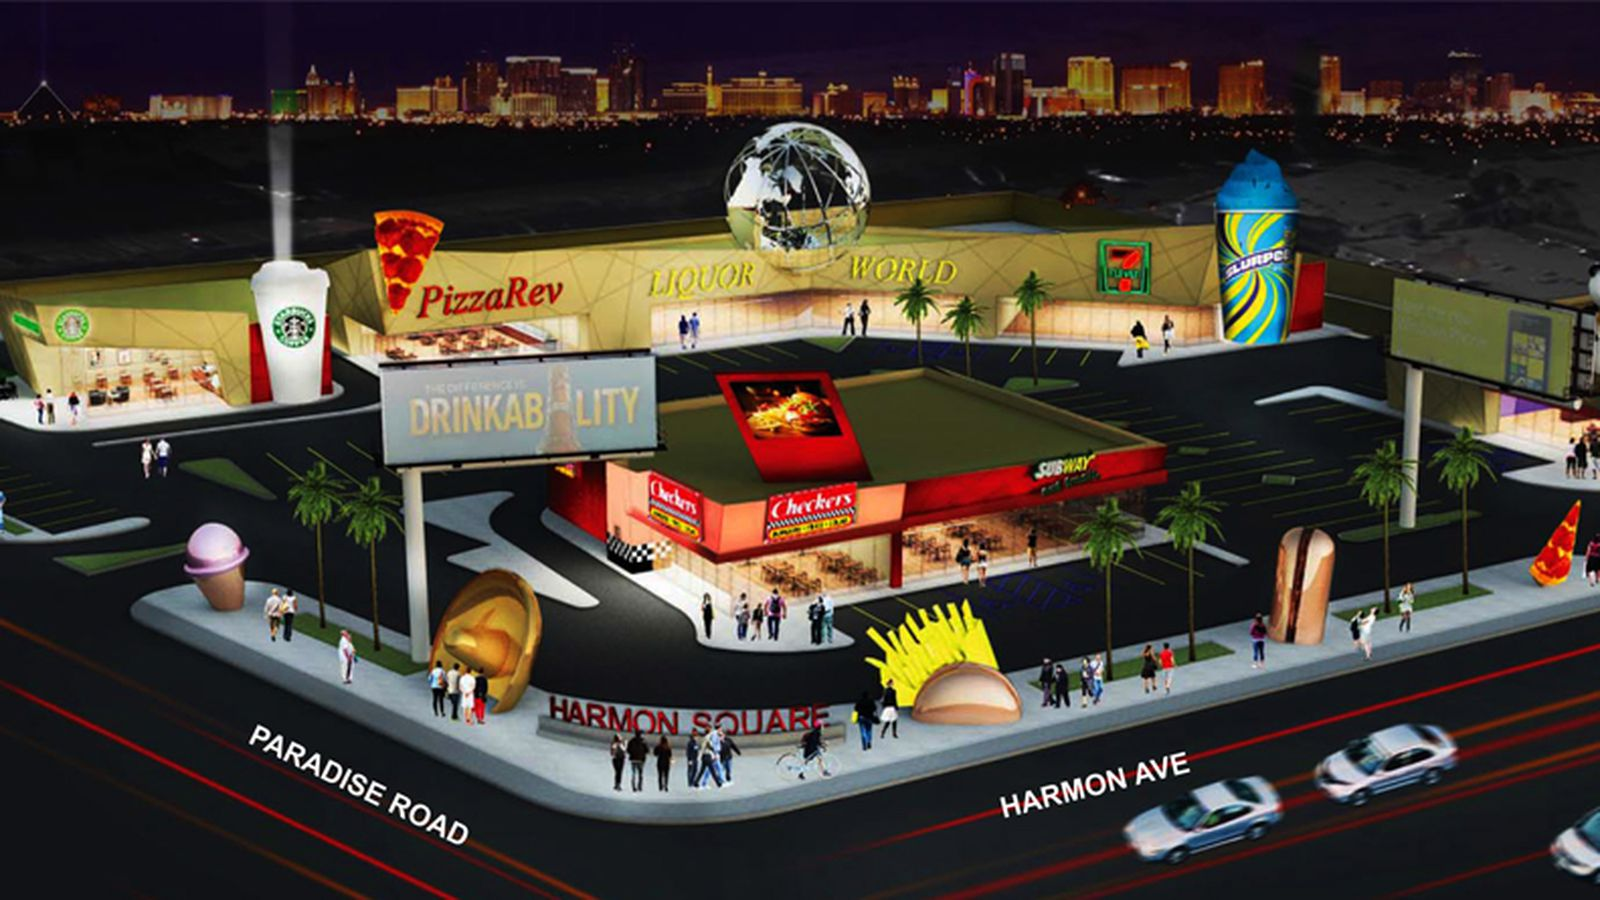 Closest Fast Food Restaurant To Current Location